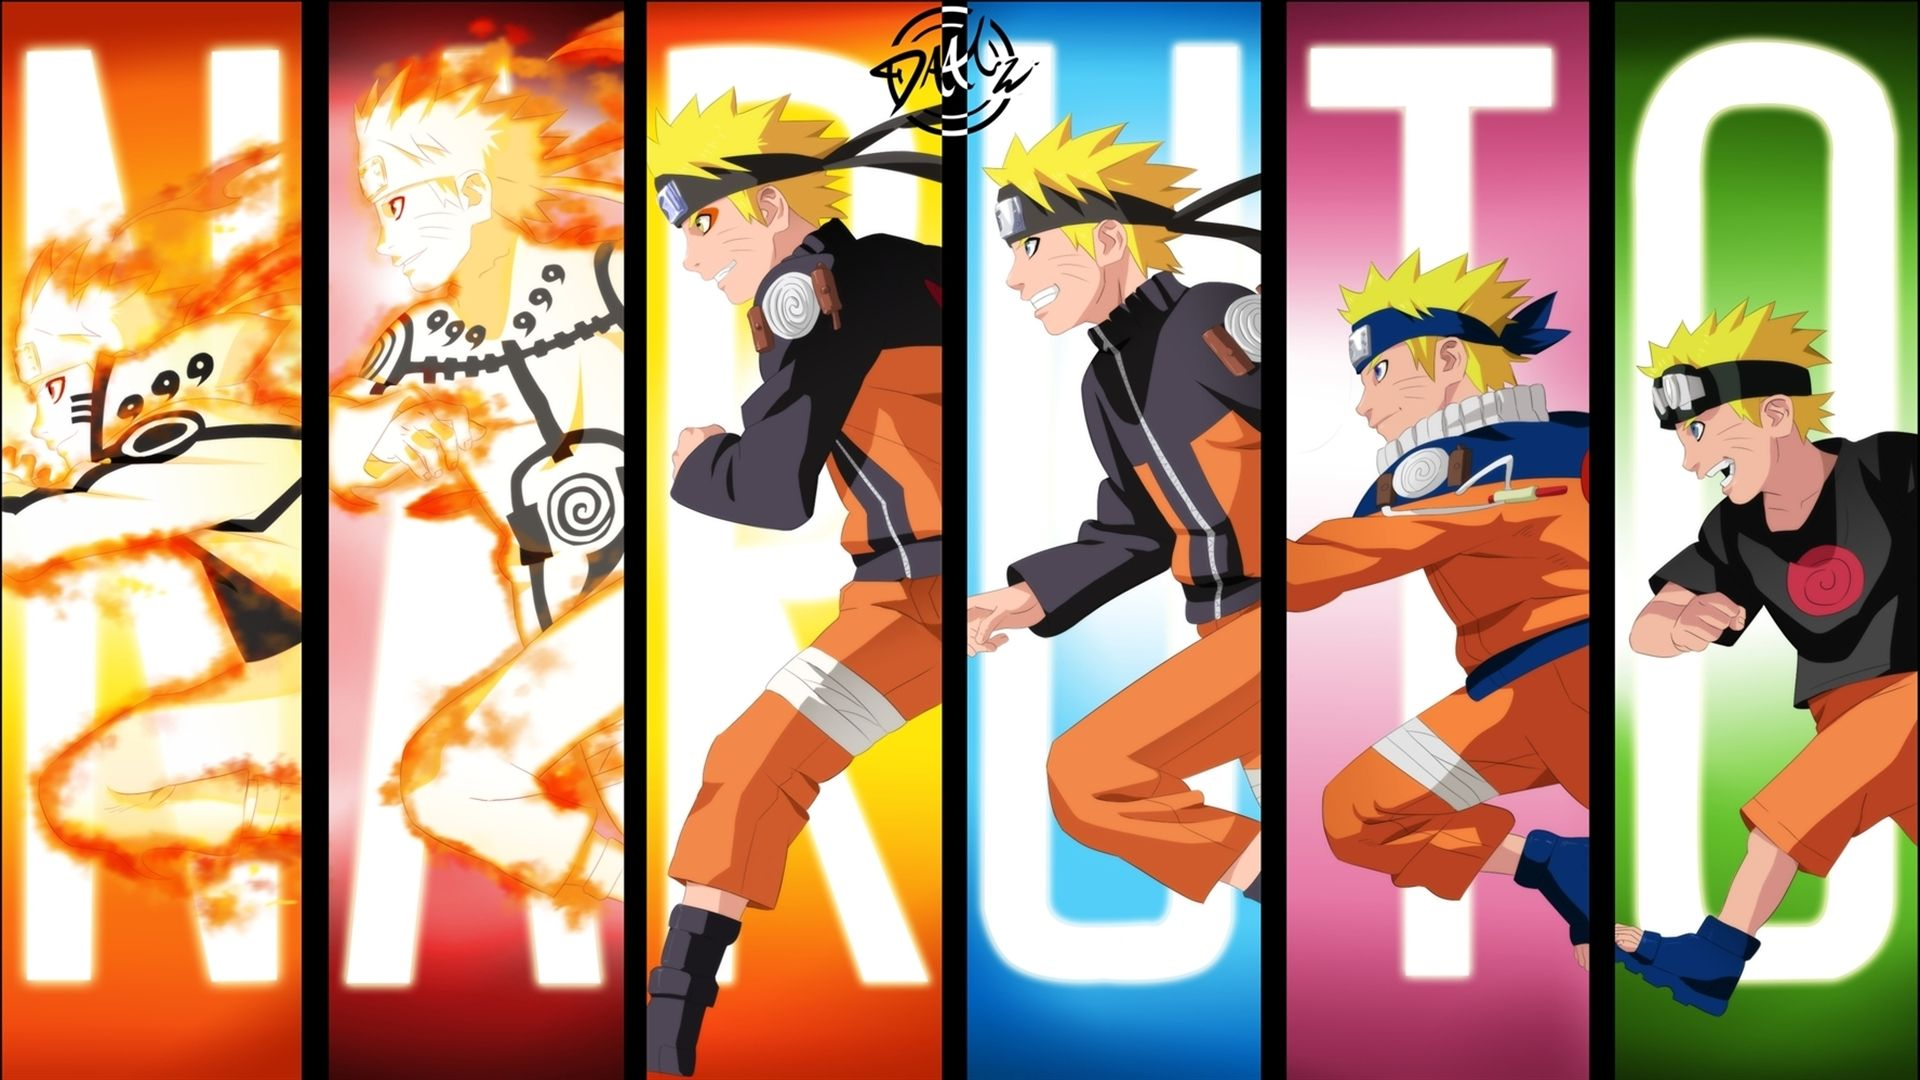 Free download Naruto Shippuden All Characters Wallpapers Top